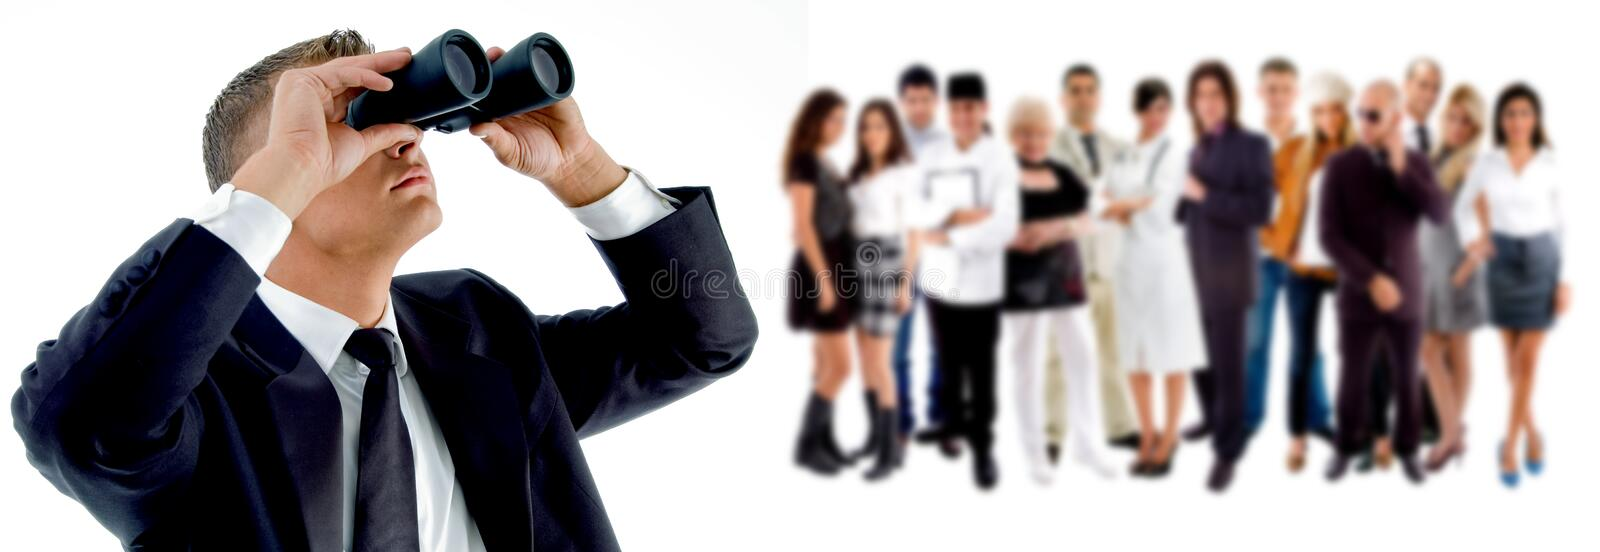 Download Search for businessteam stock image. Image of expression - 8618239